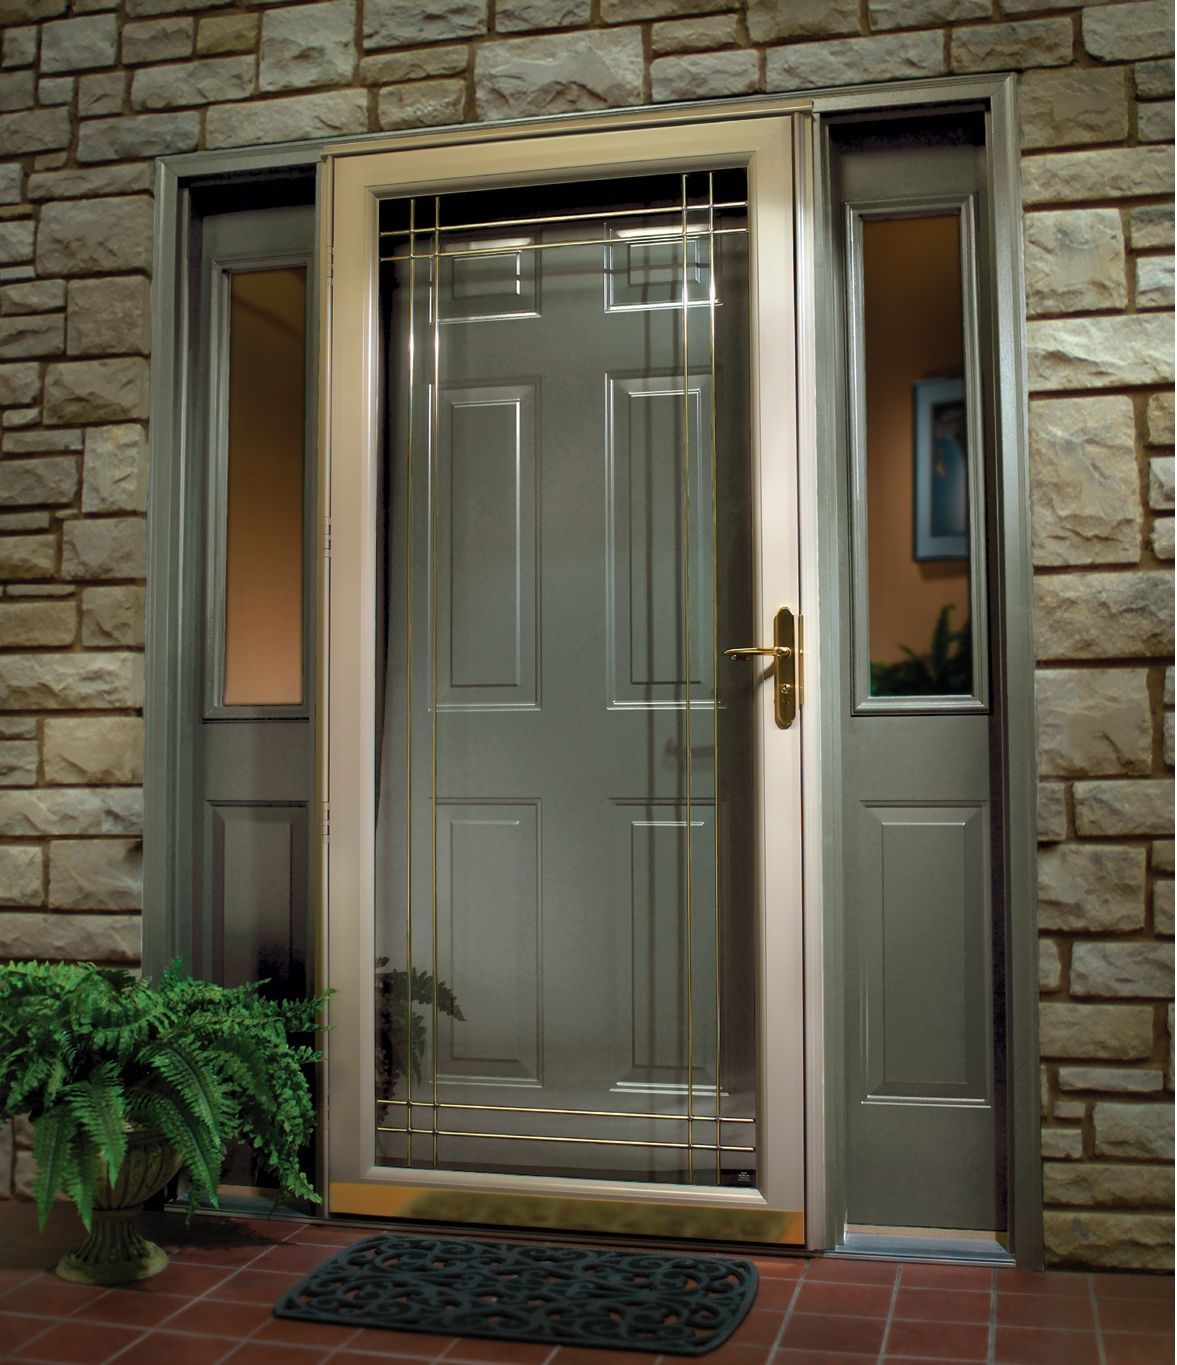 exterior doors for homes front door ideas front entry door - Front Door Designs For Homes